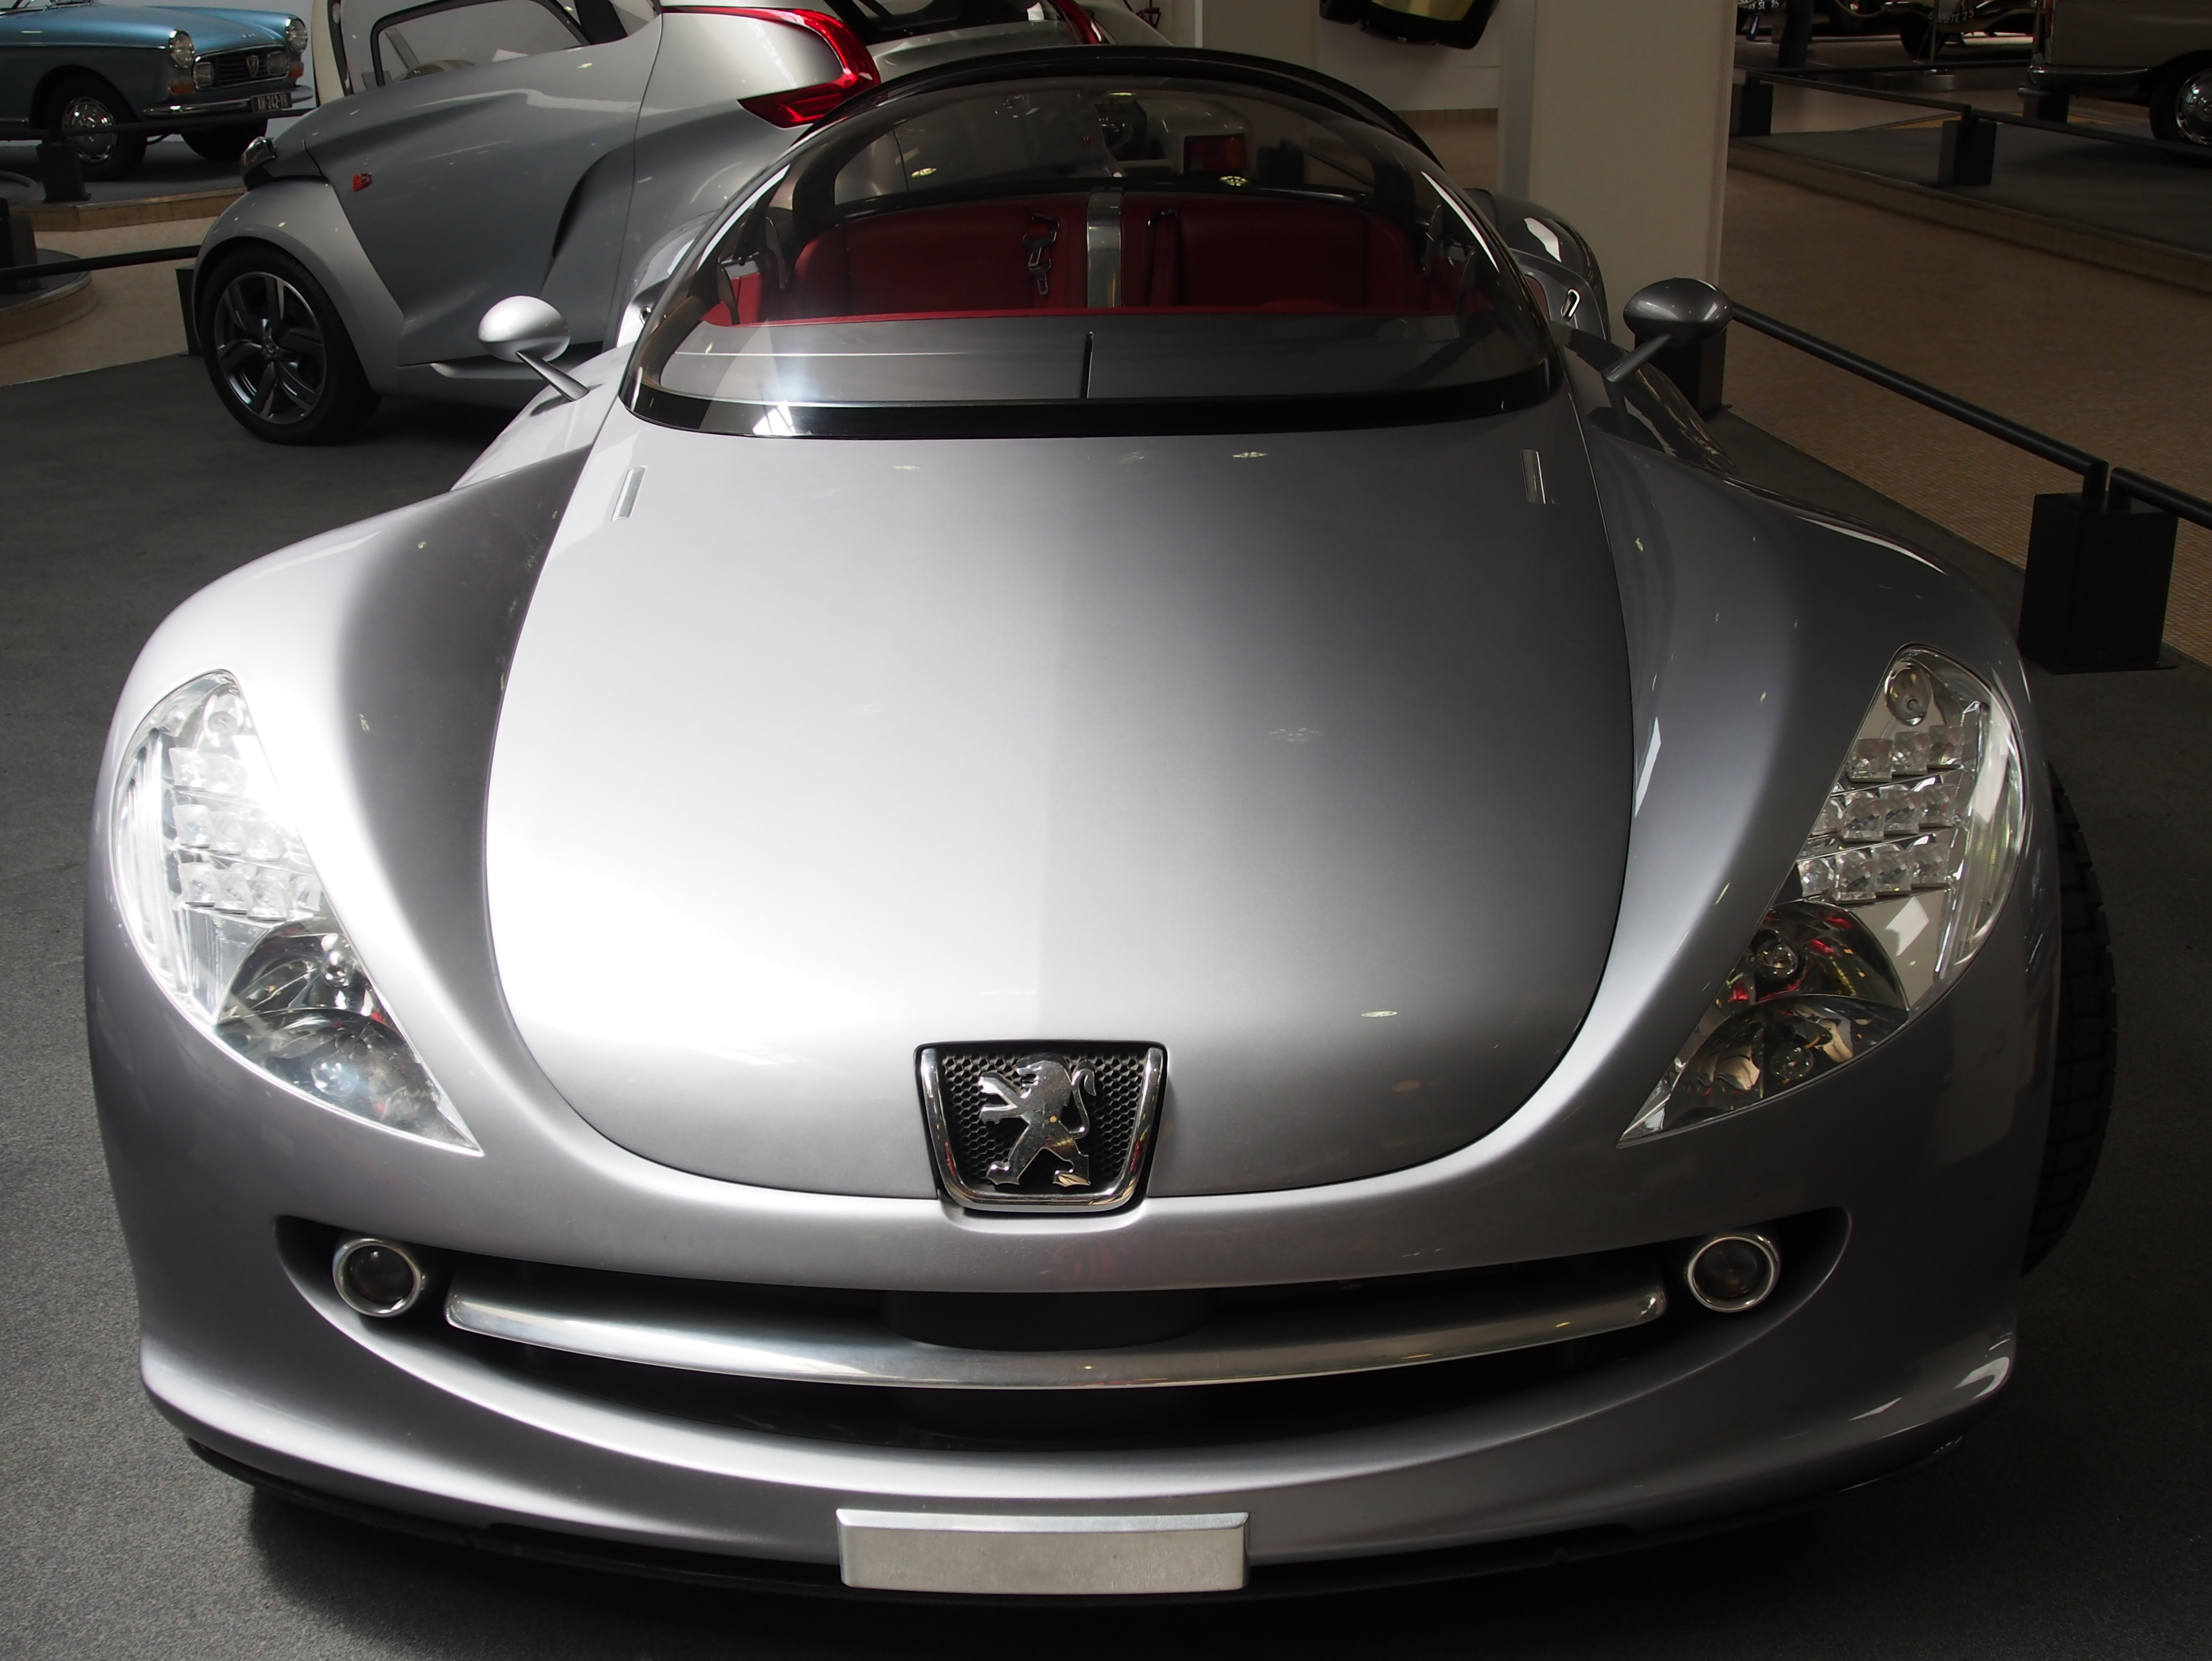 file:peugeot concept car - wikimedia commons